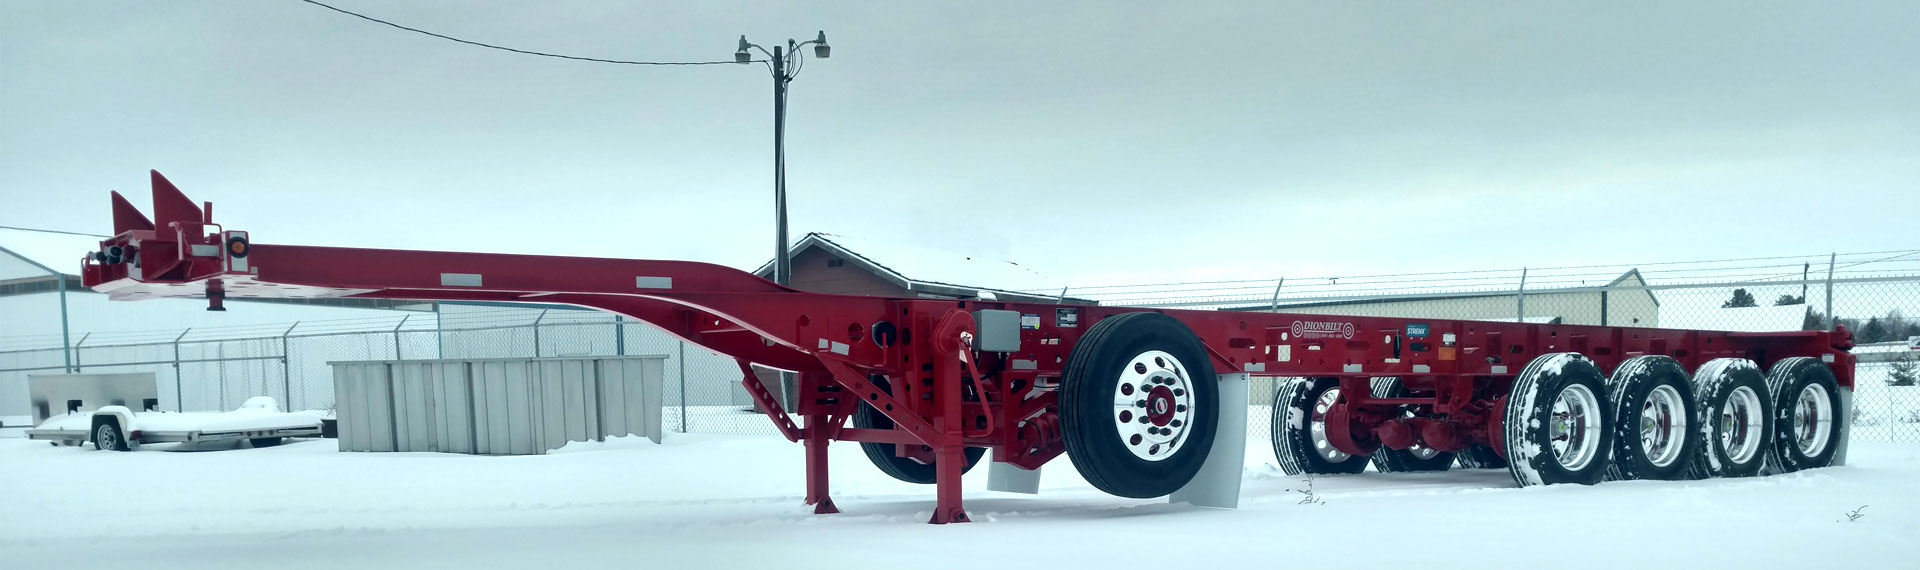 A long lightweight trailer chassis made with Strenx® 100 standing on snowy ground